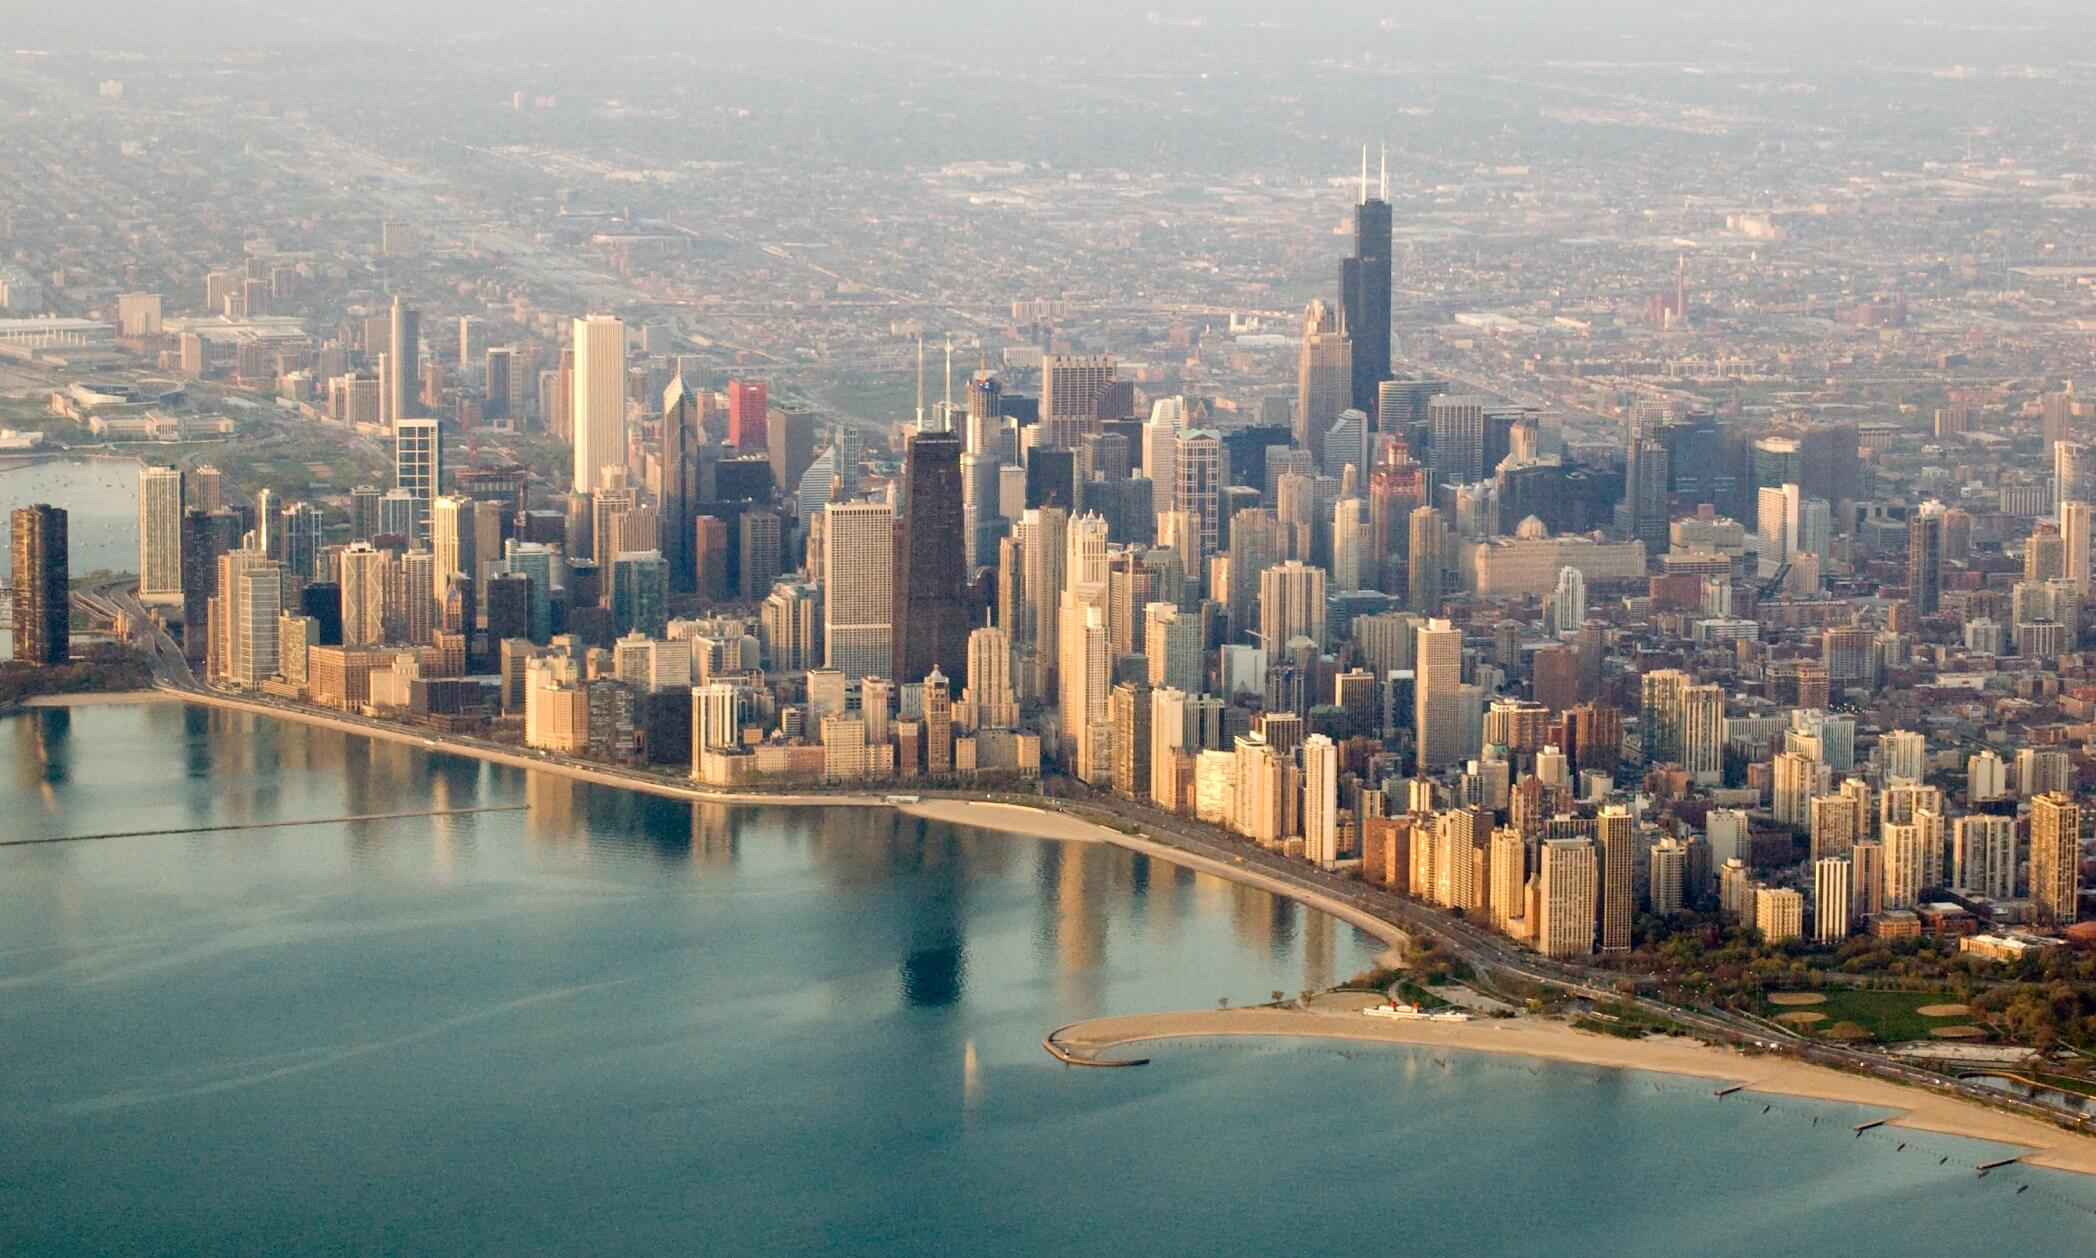 Skyline of Chicago, Illinois